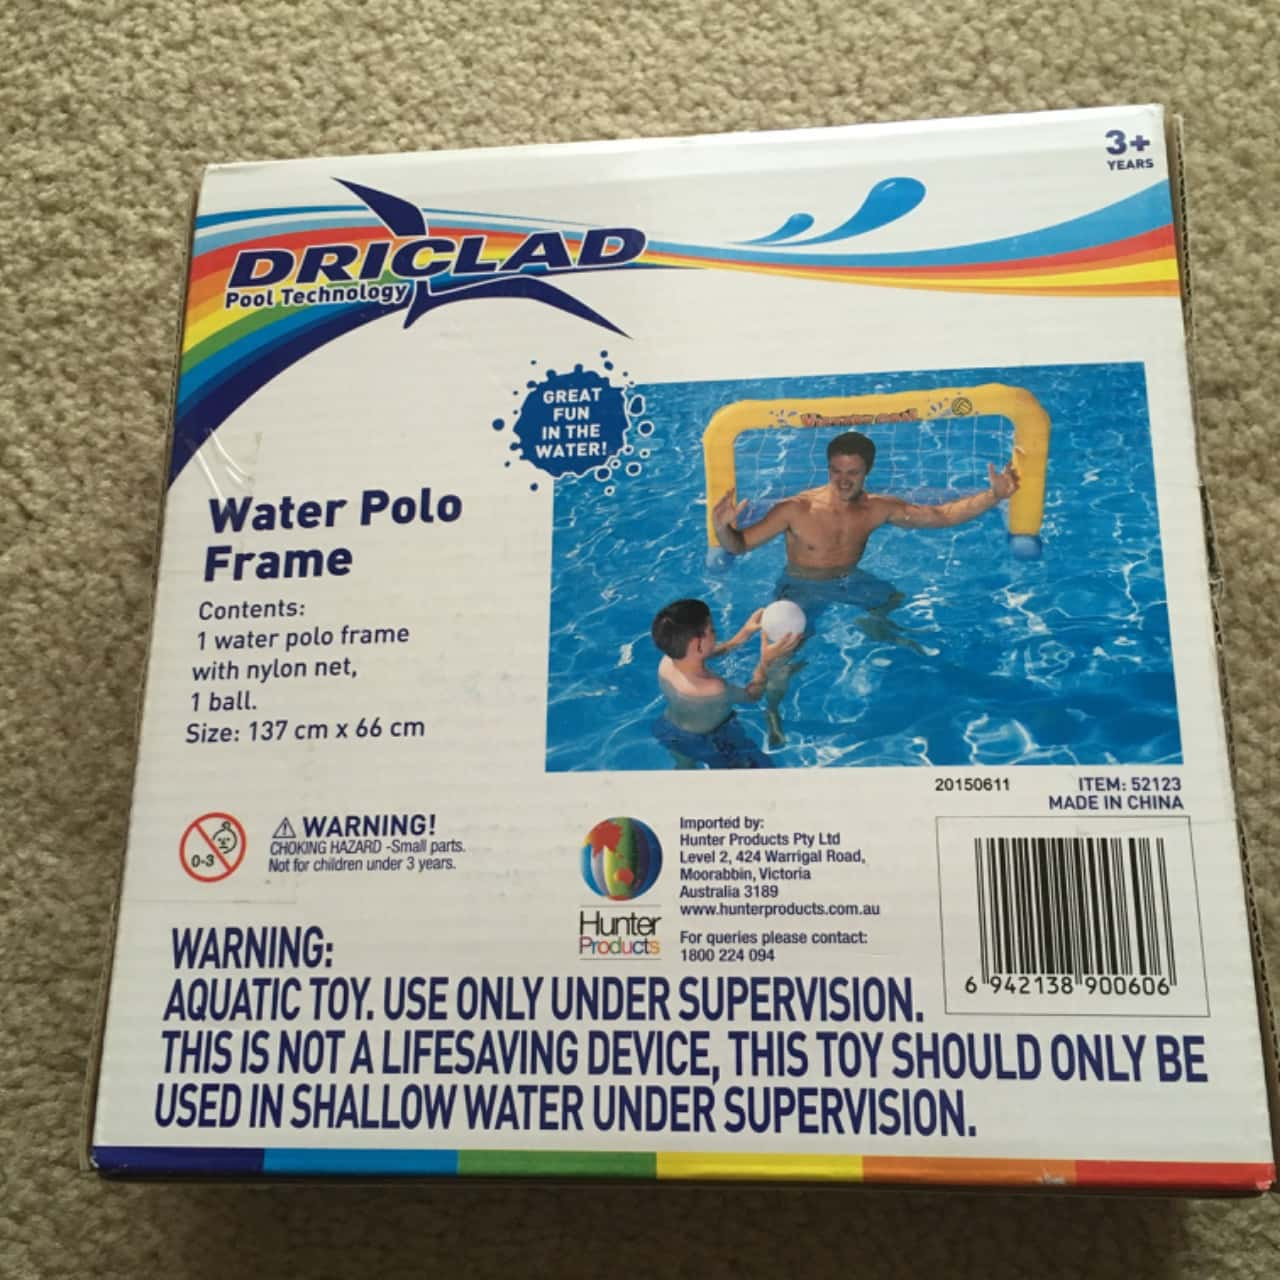 Driclad Water Polo Inflatable Frame - Brand New